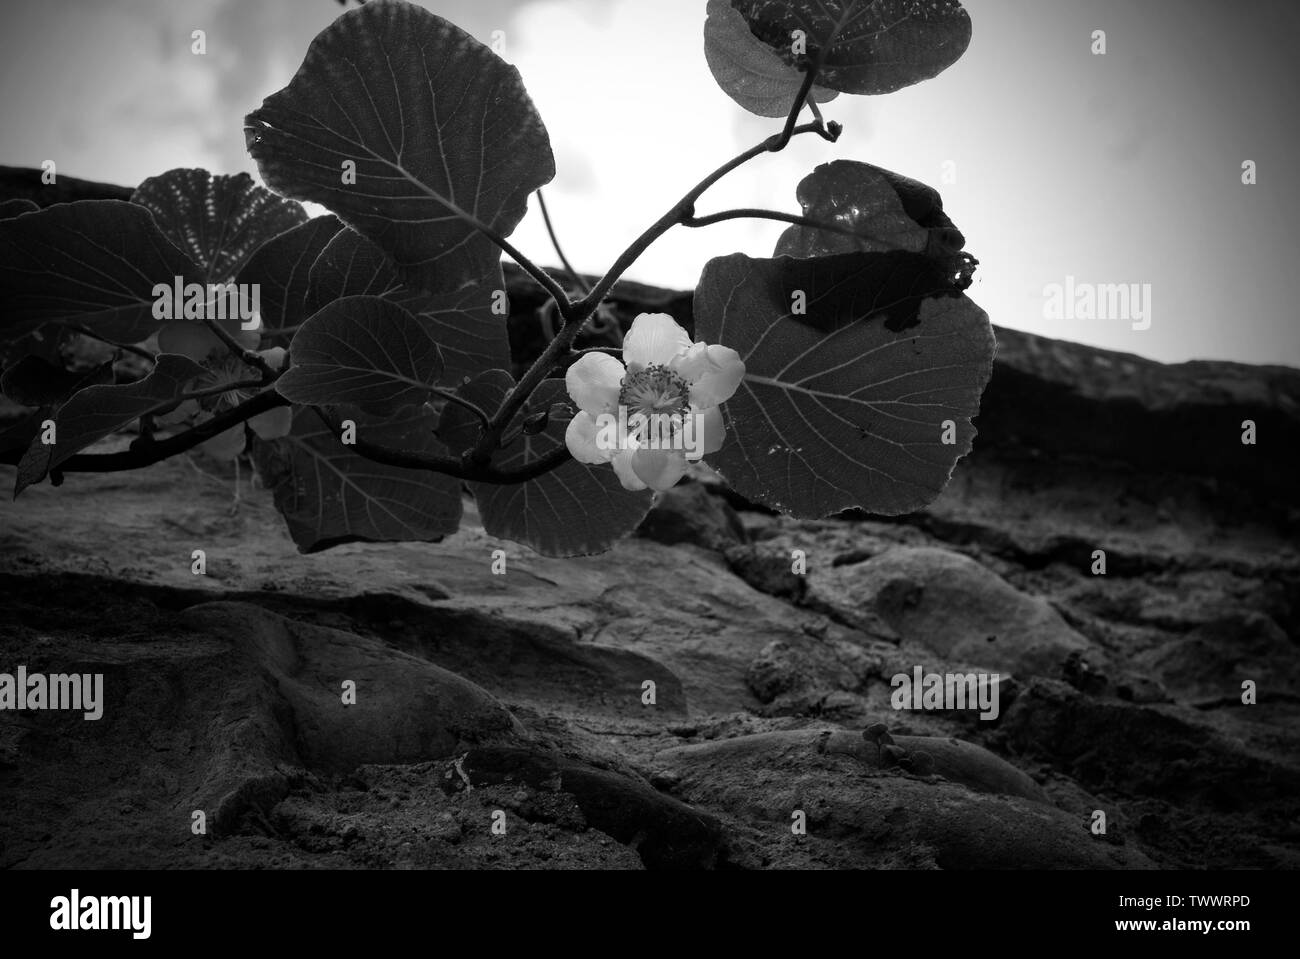 Kiwi flower blooming near to a stones wall on the blue sky with clouds background. Black and white photo with kiwi flower - Stock Image